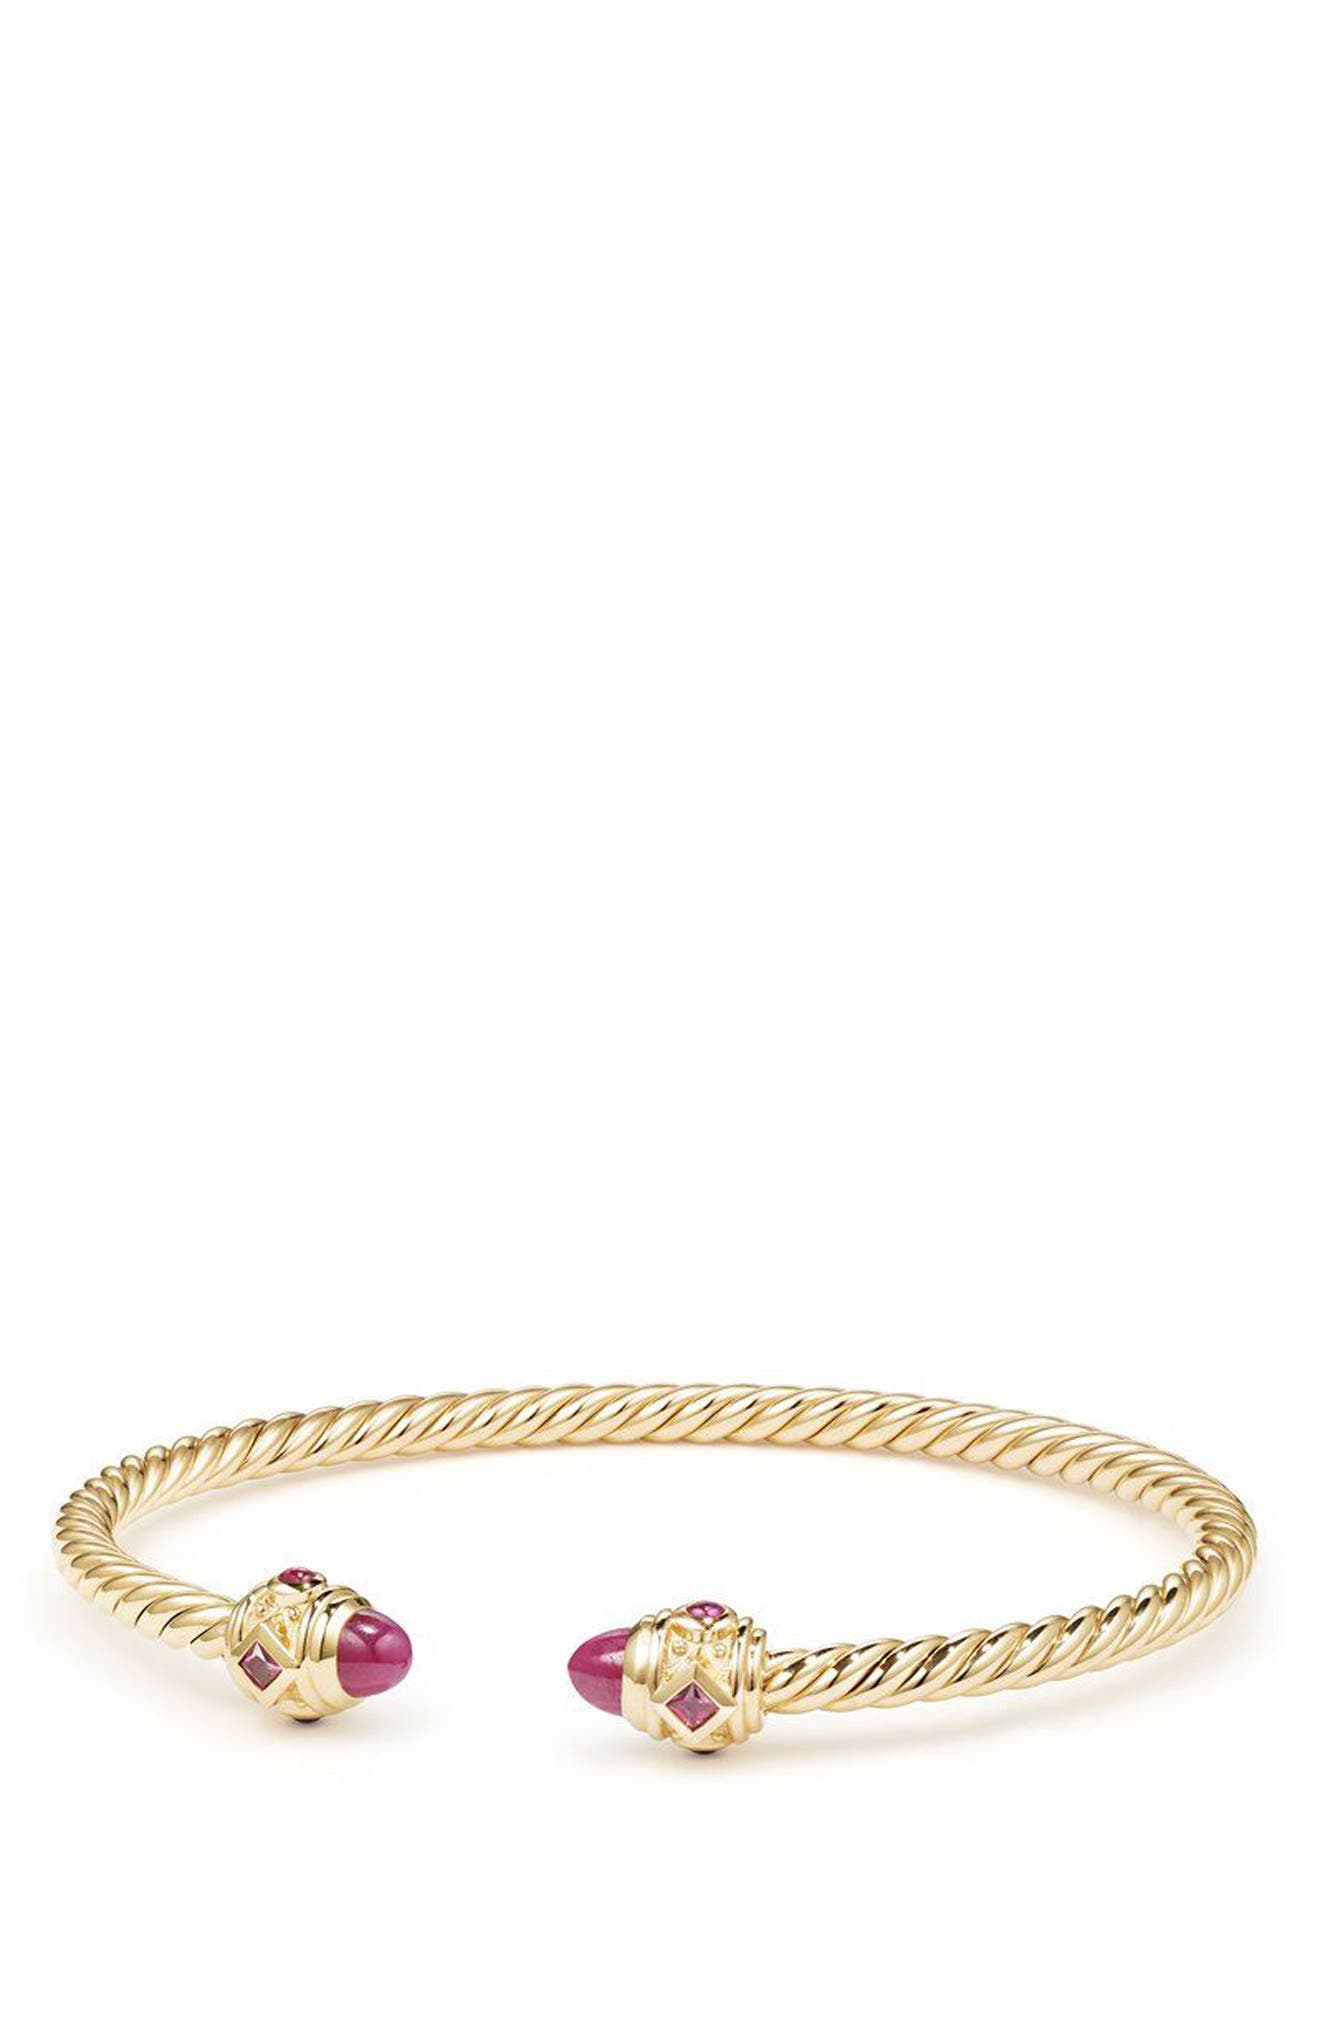 David Yurman Renaissance Bracelet in 18K Gold, 3.5mm